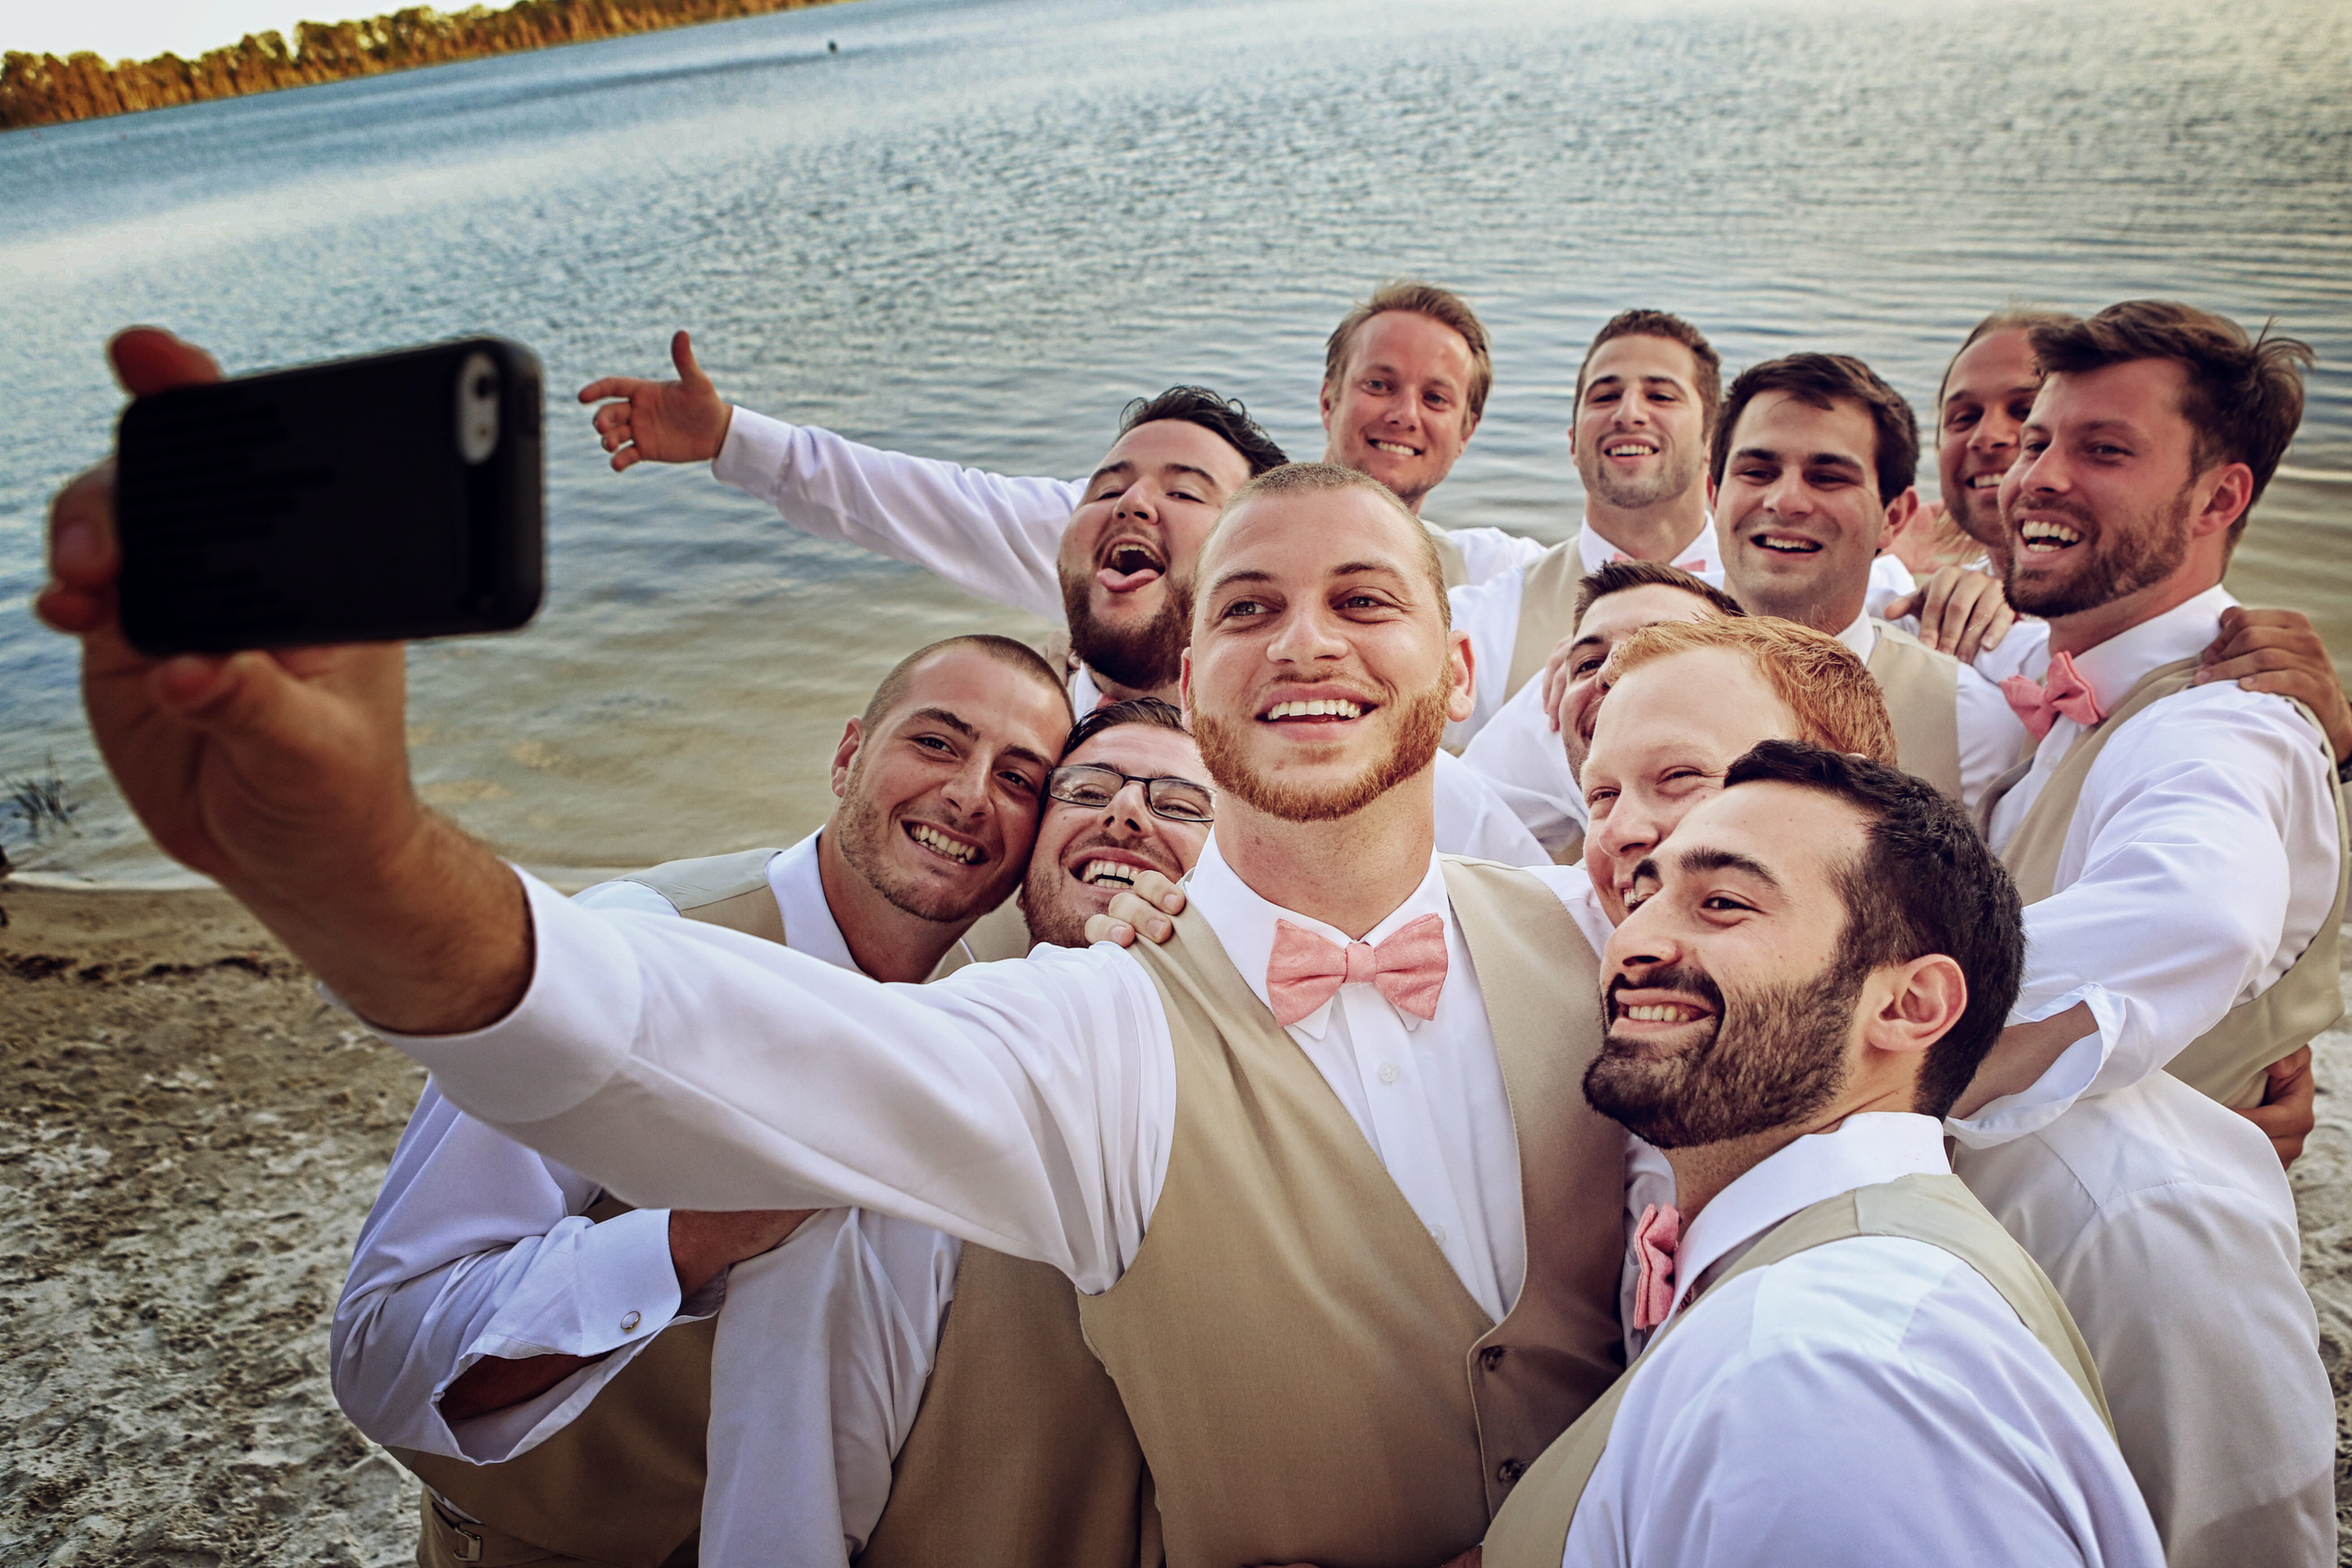 Funny groomsmen selfie in pink bowties at a Paradise Cove wedding in Orlando